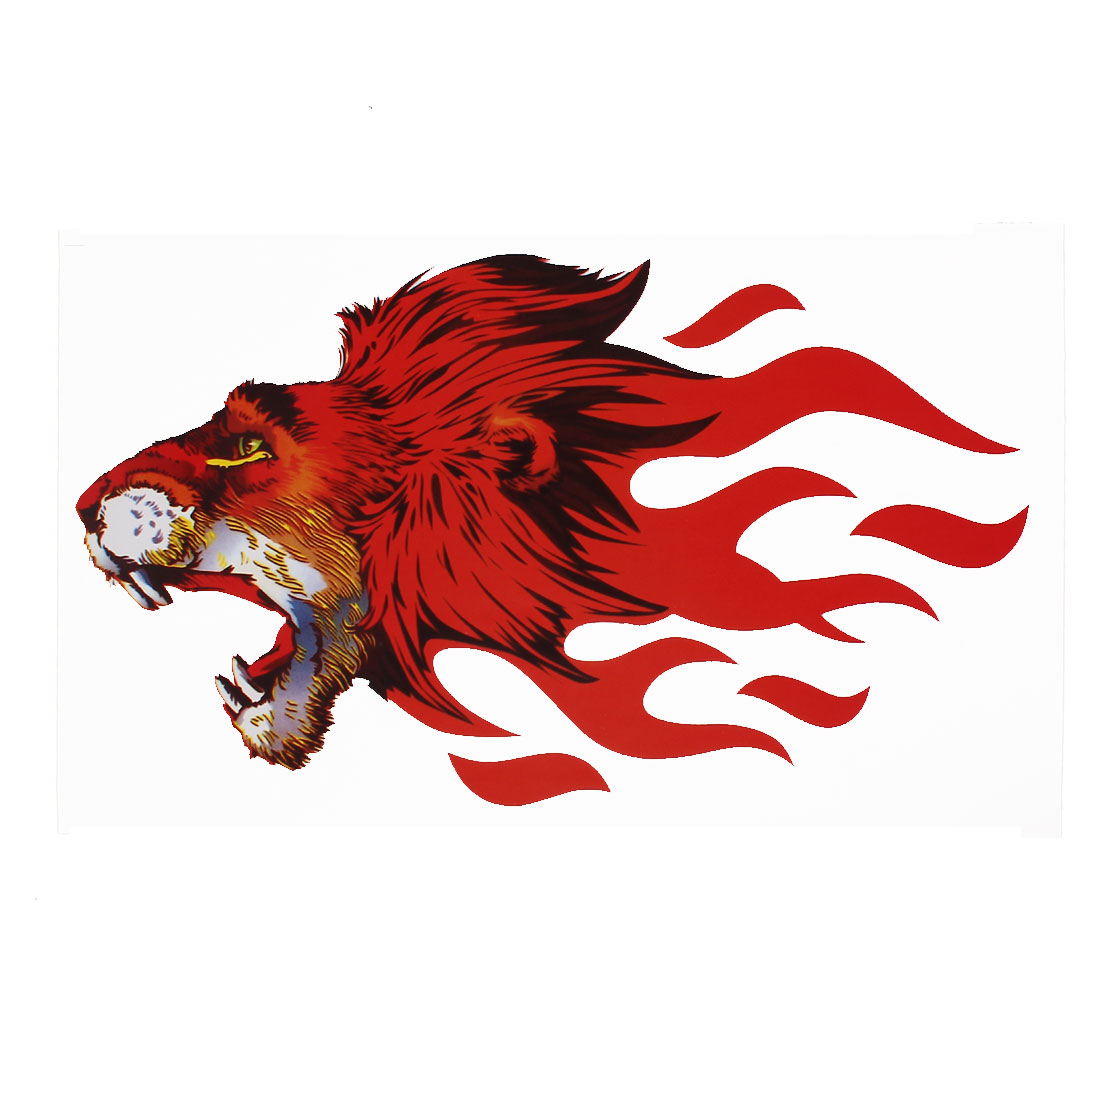 Decal Red Lion Stickers Figure For Motocycle